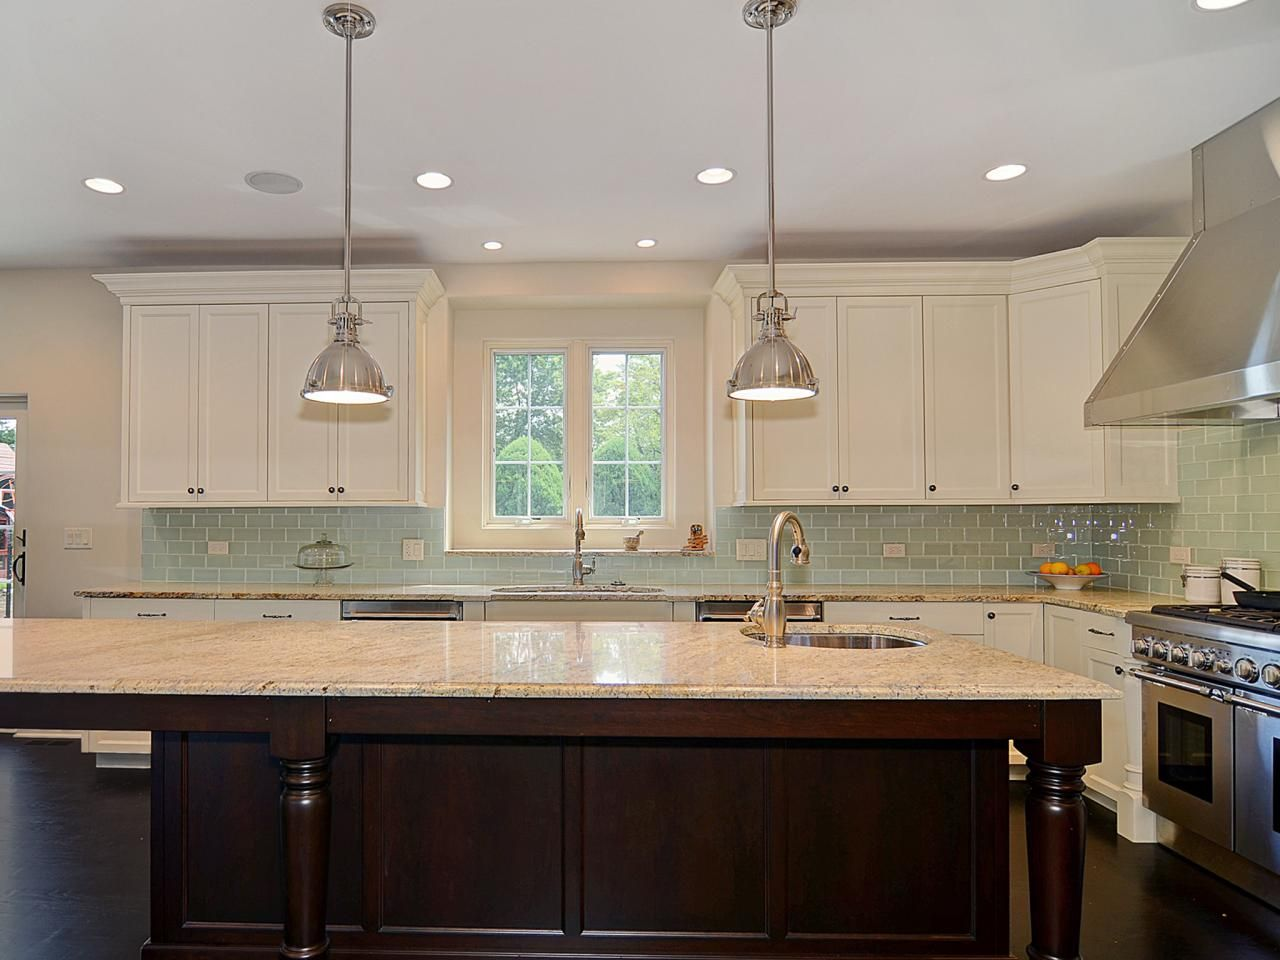 This kitchen has a soft blue glass tile backsplash with traditional